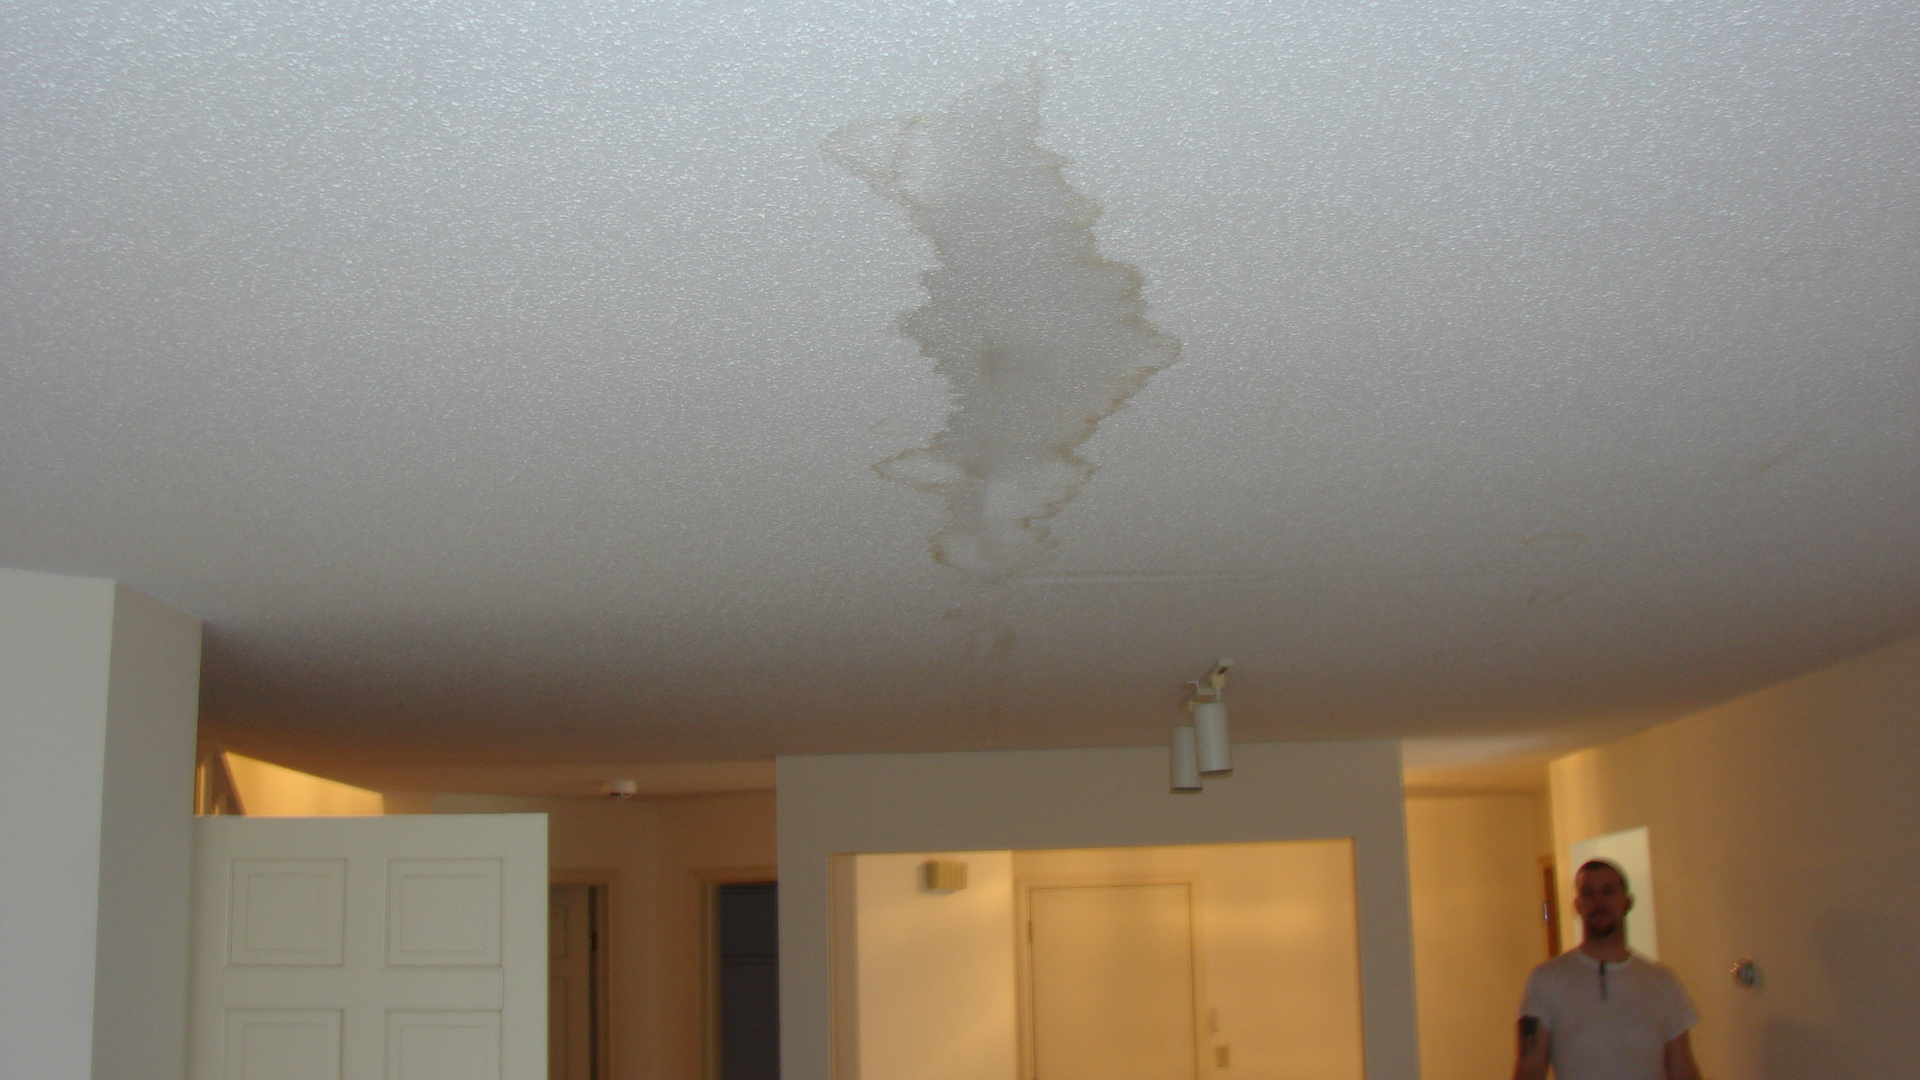 Big Water Spot On Ceiling To Be Fixed